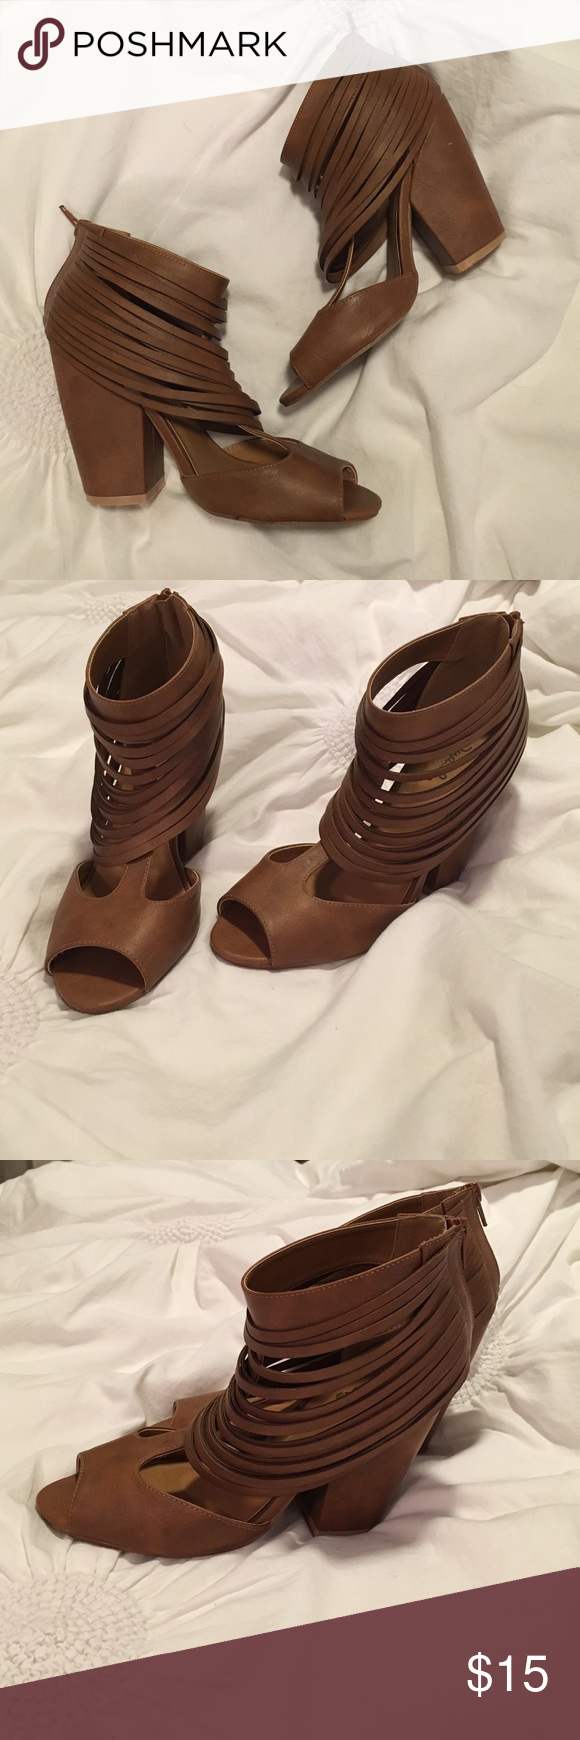 Quipid Vegan Leather Heels Brown vegan leather trendy peep toes. Bottoms lightly scuffed/dirty but super comfy! Runs a little big- size 8.5 but fits like 9. Quipid Shoes Heels